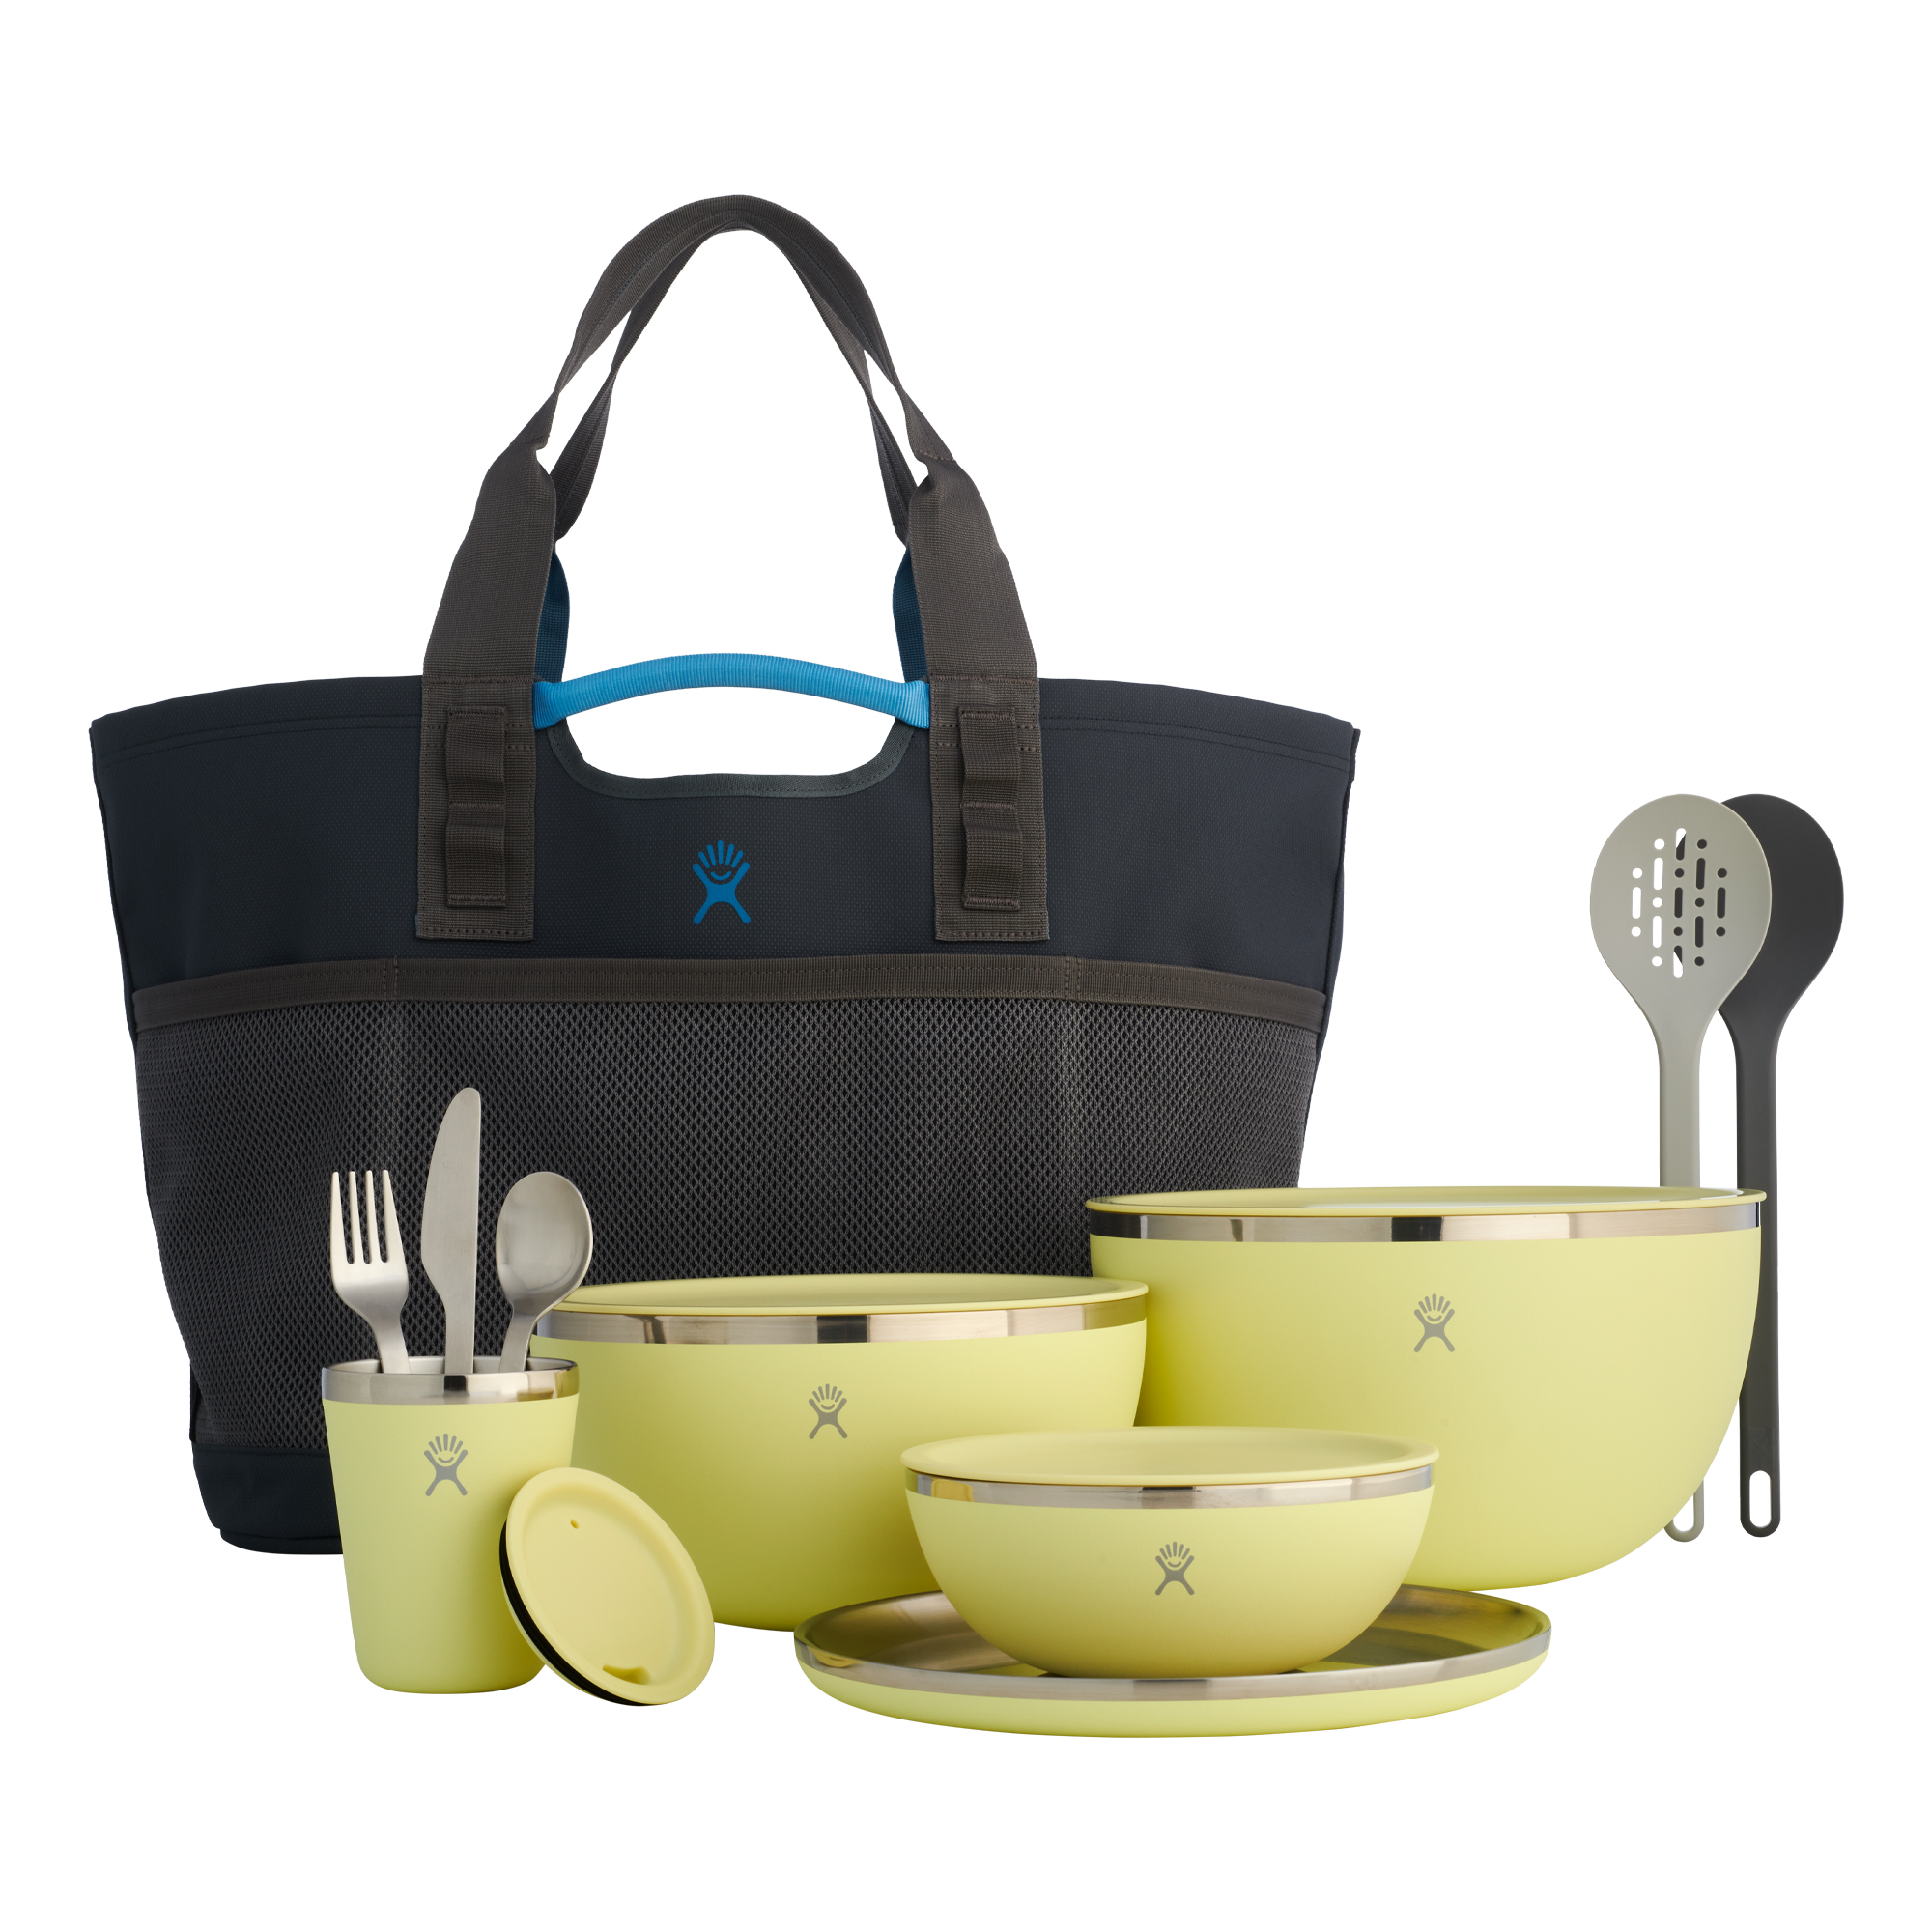 gray tote back and set of yellow bowls and kitchen utensils together on a white background